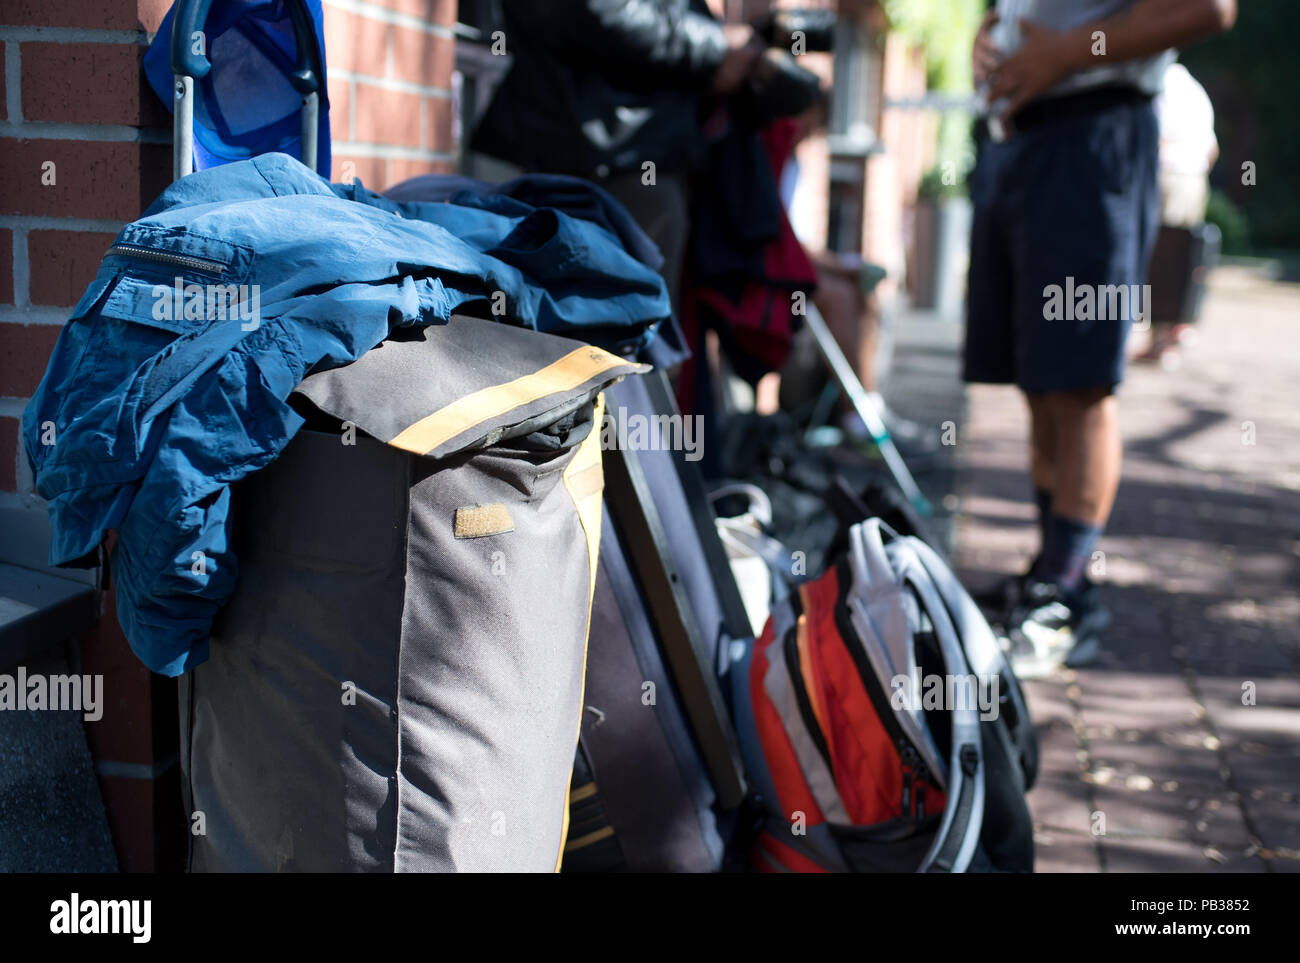 Munich, Germany  26th July, 2018  Homeless people stand with their